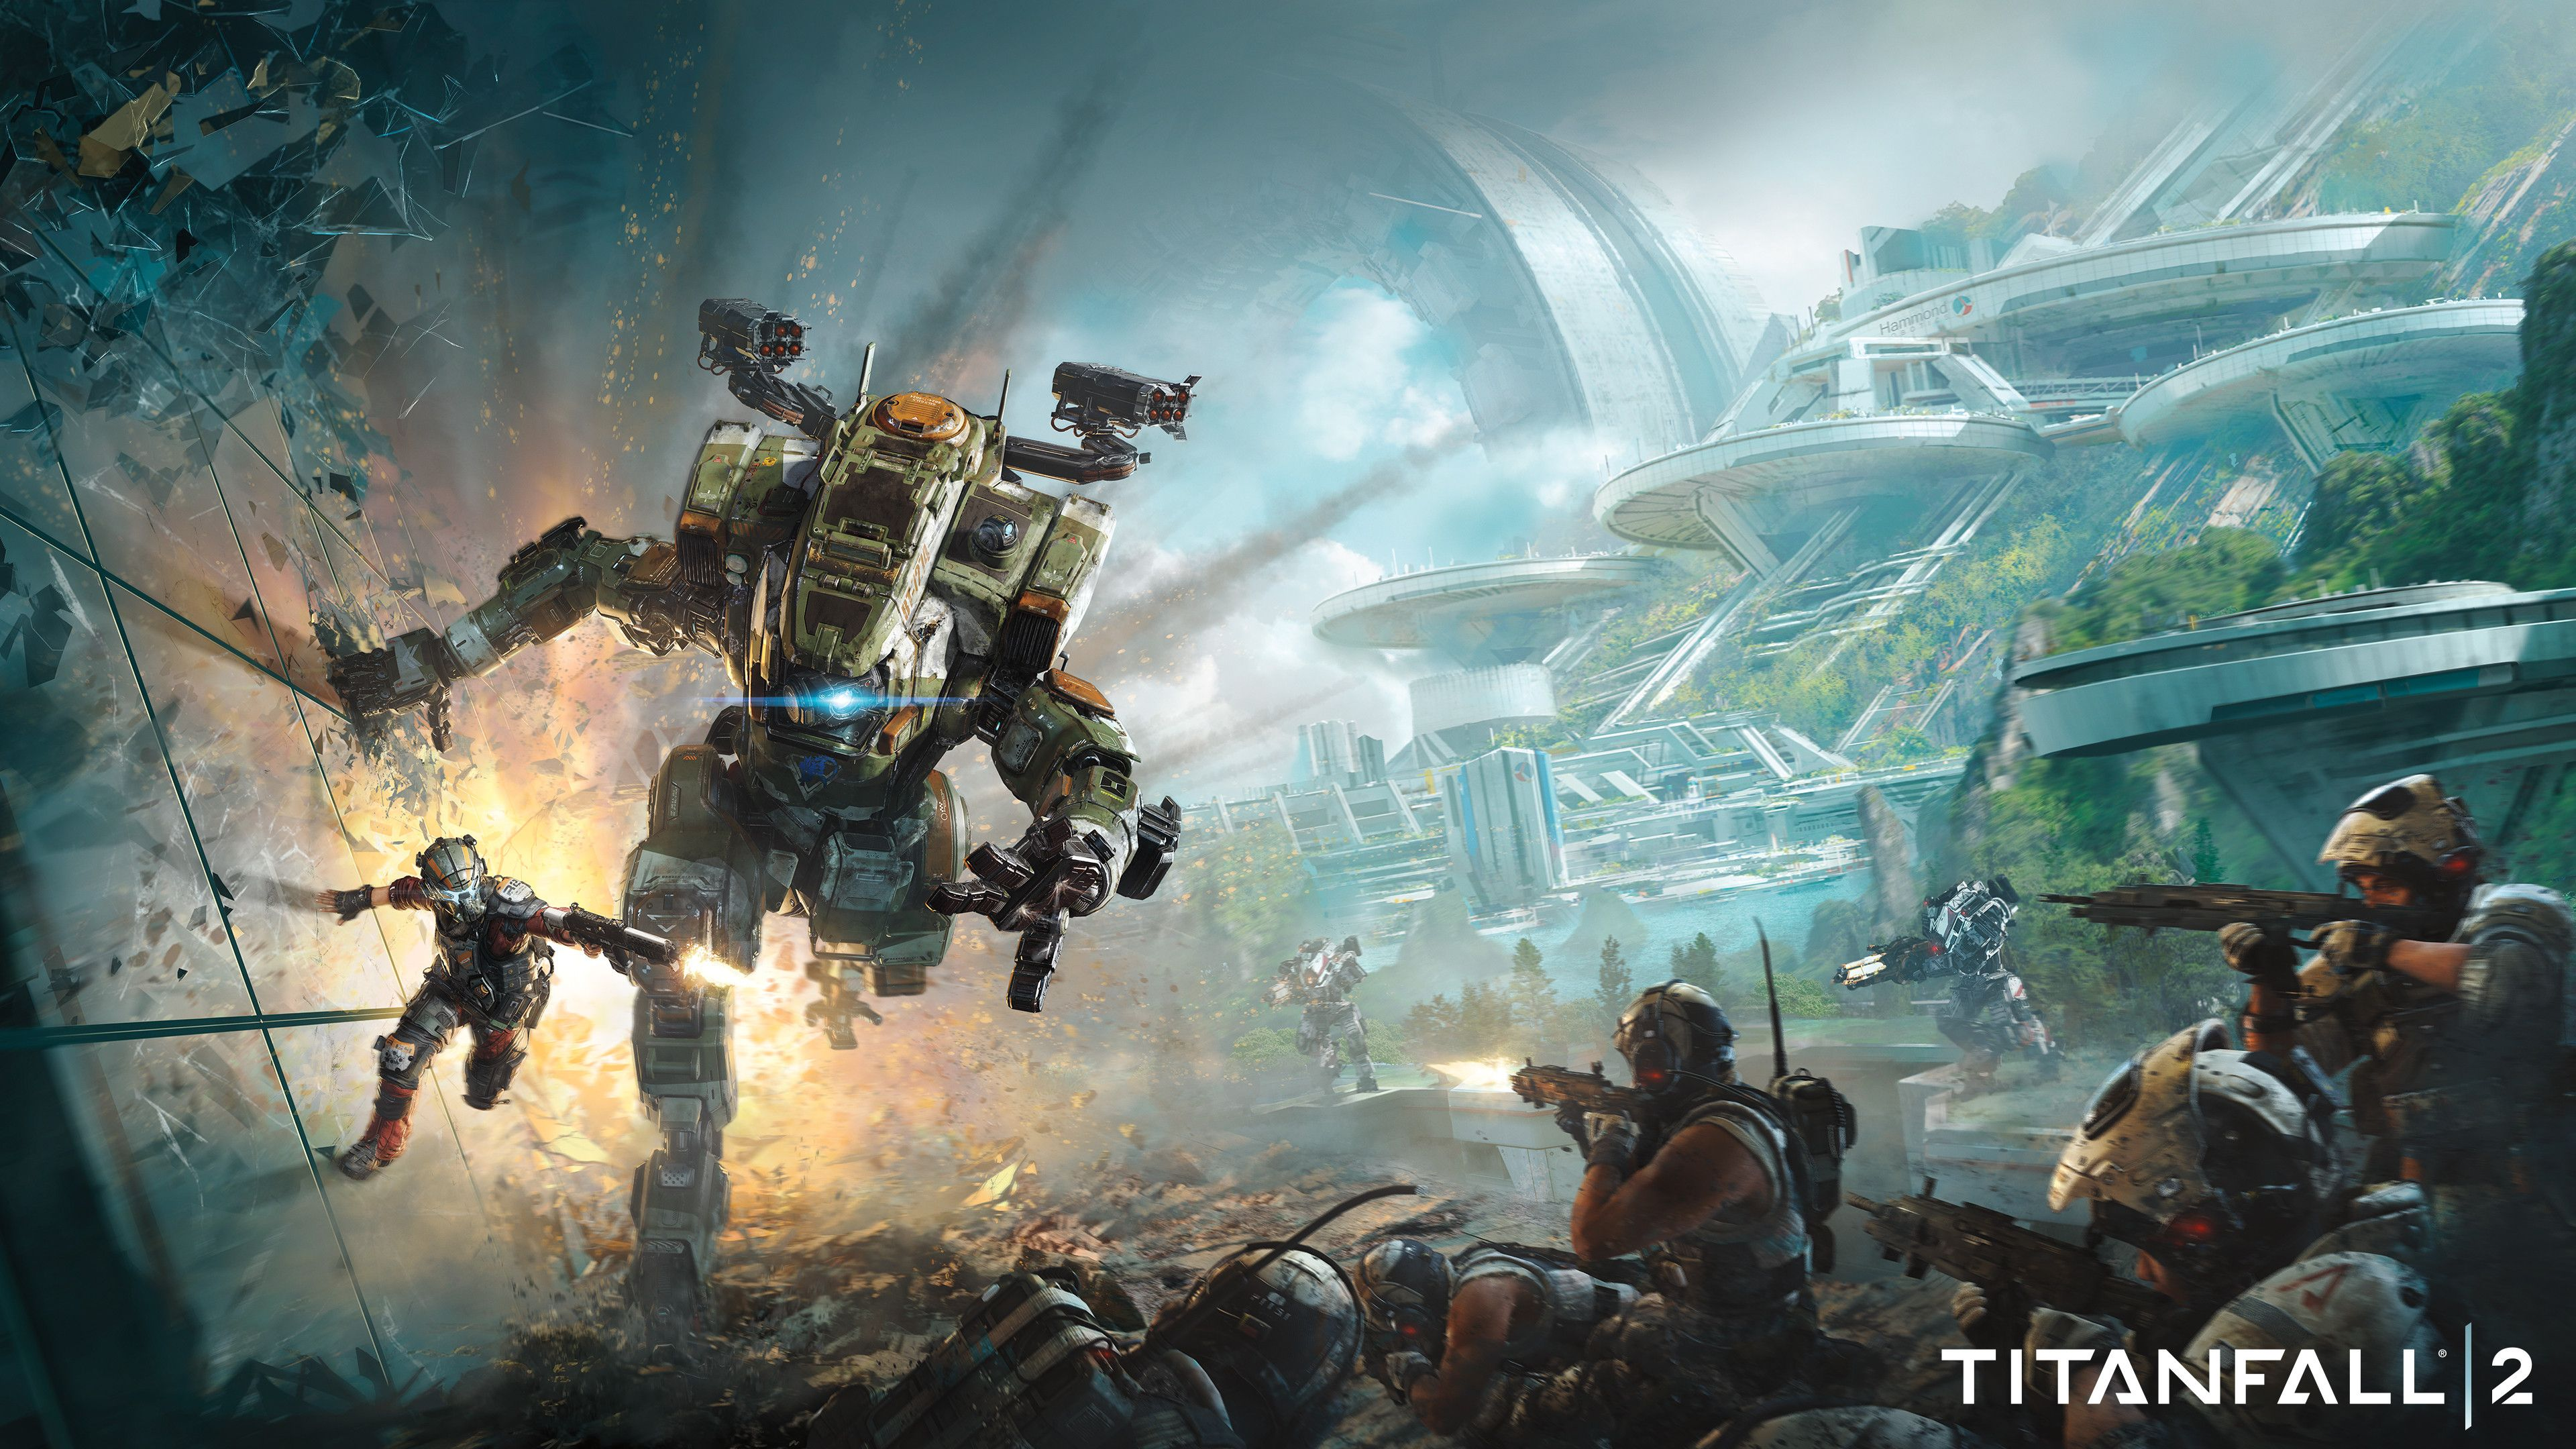 Titanfall 2 4k 2016 Titanfall 2 Wallpapers Games Wallpapers 4k Wallpapers 2016 Games Wallpapers Titanfall Pc Games Wallpapers Xbox One Games